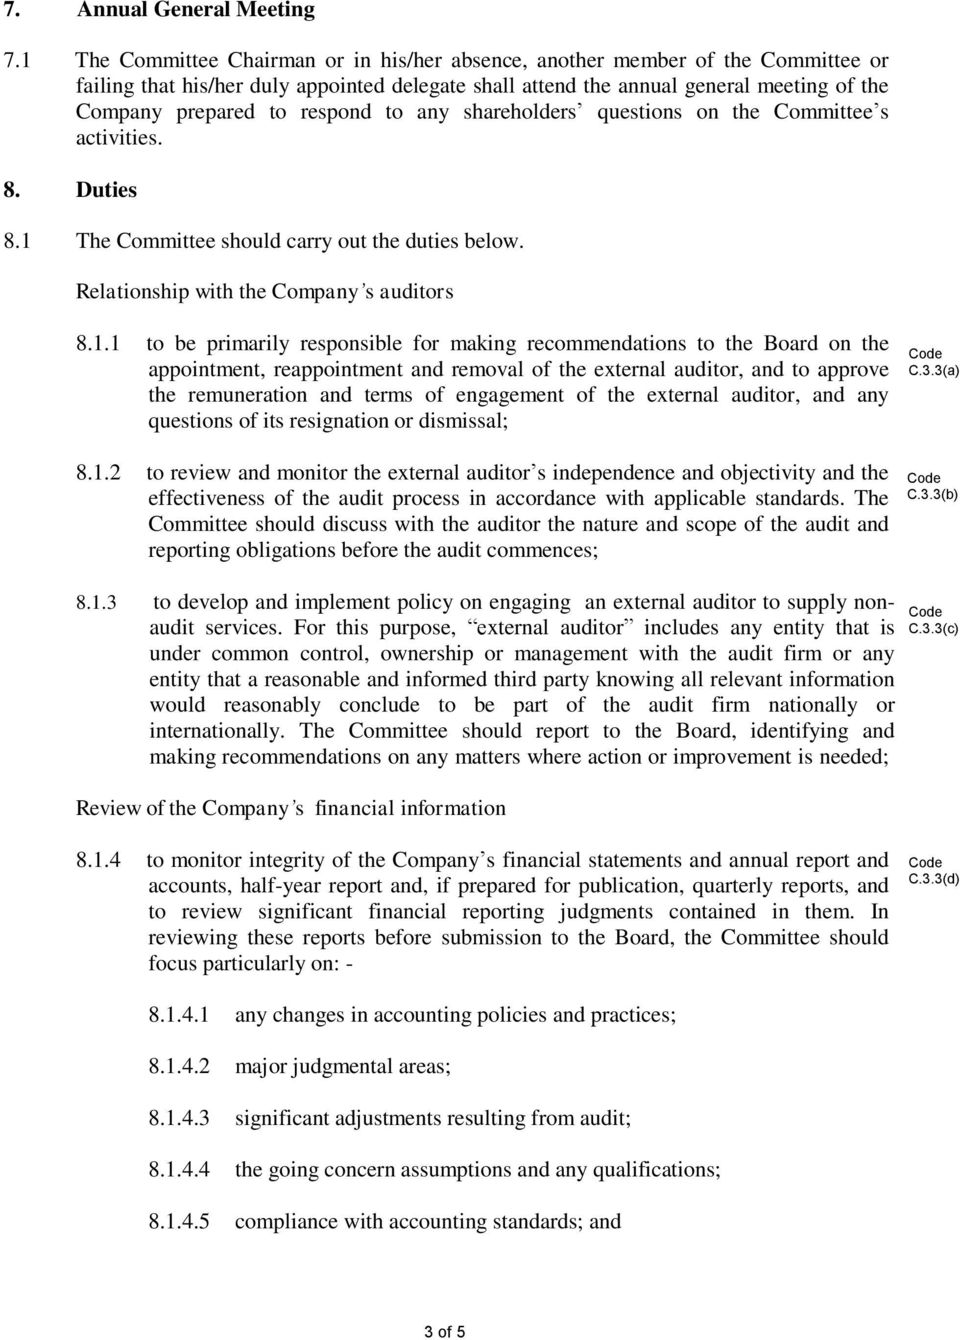 respond to any shareholders questions on the Committee s activities. 8. Duties 8.1